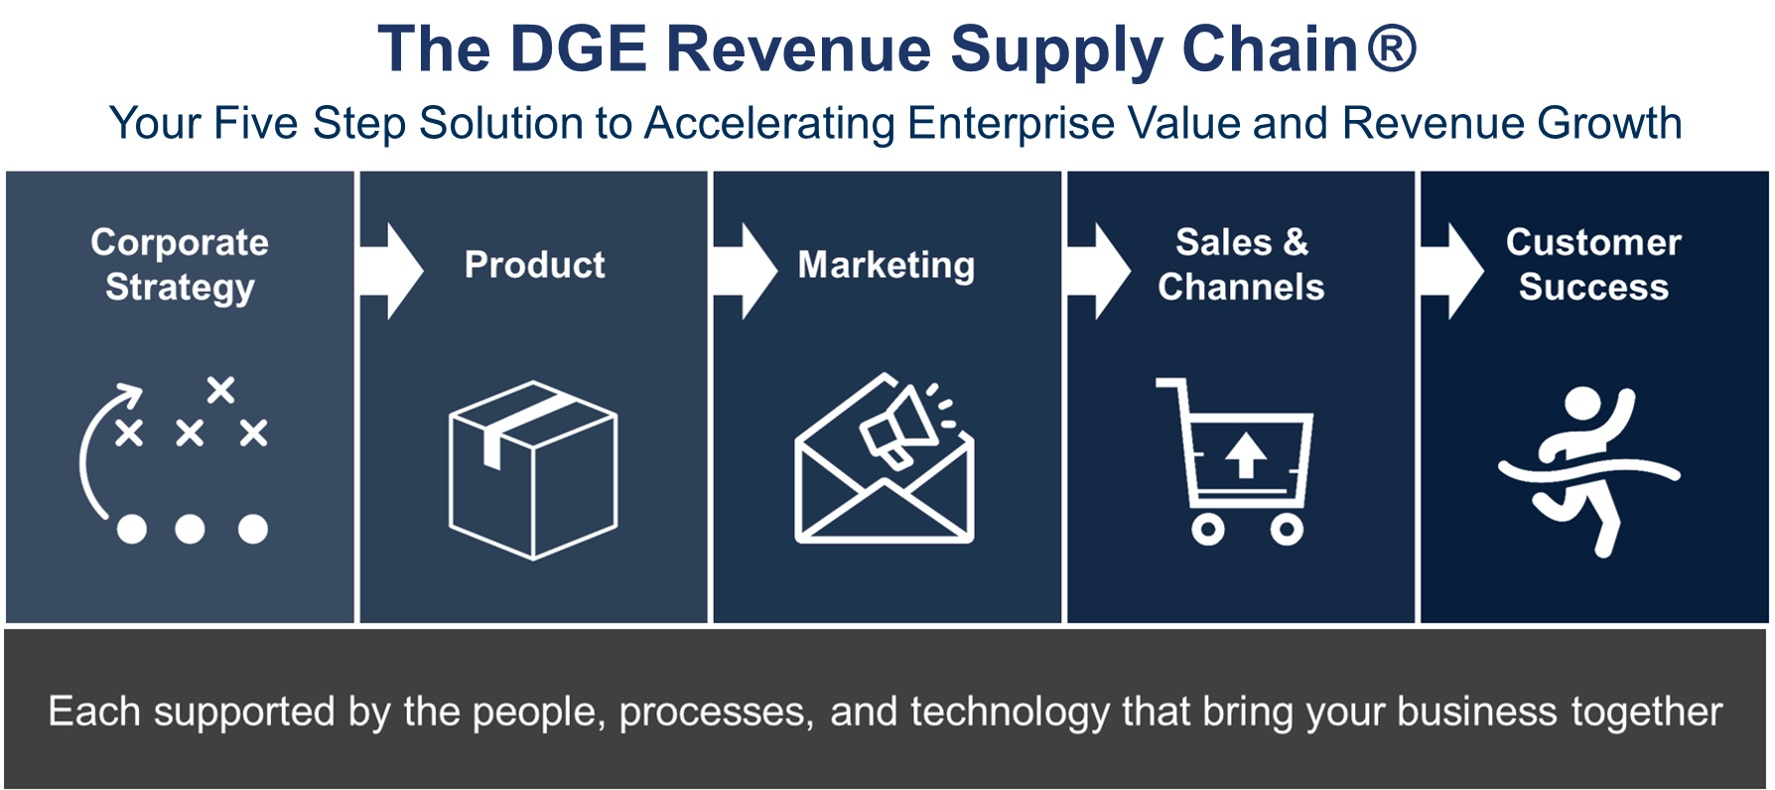 The+DGE+Revenue+Supply+Chain.jpg